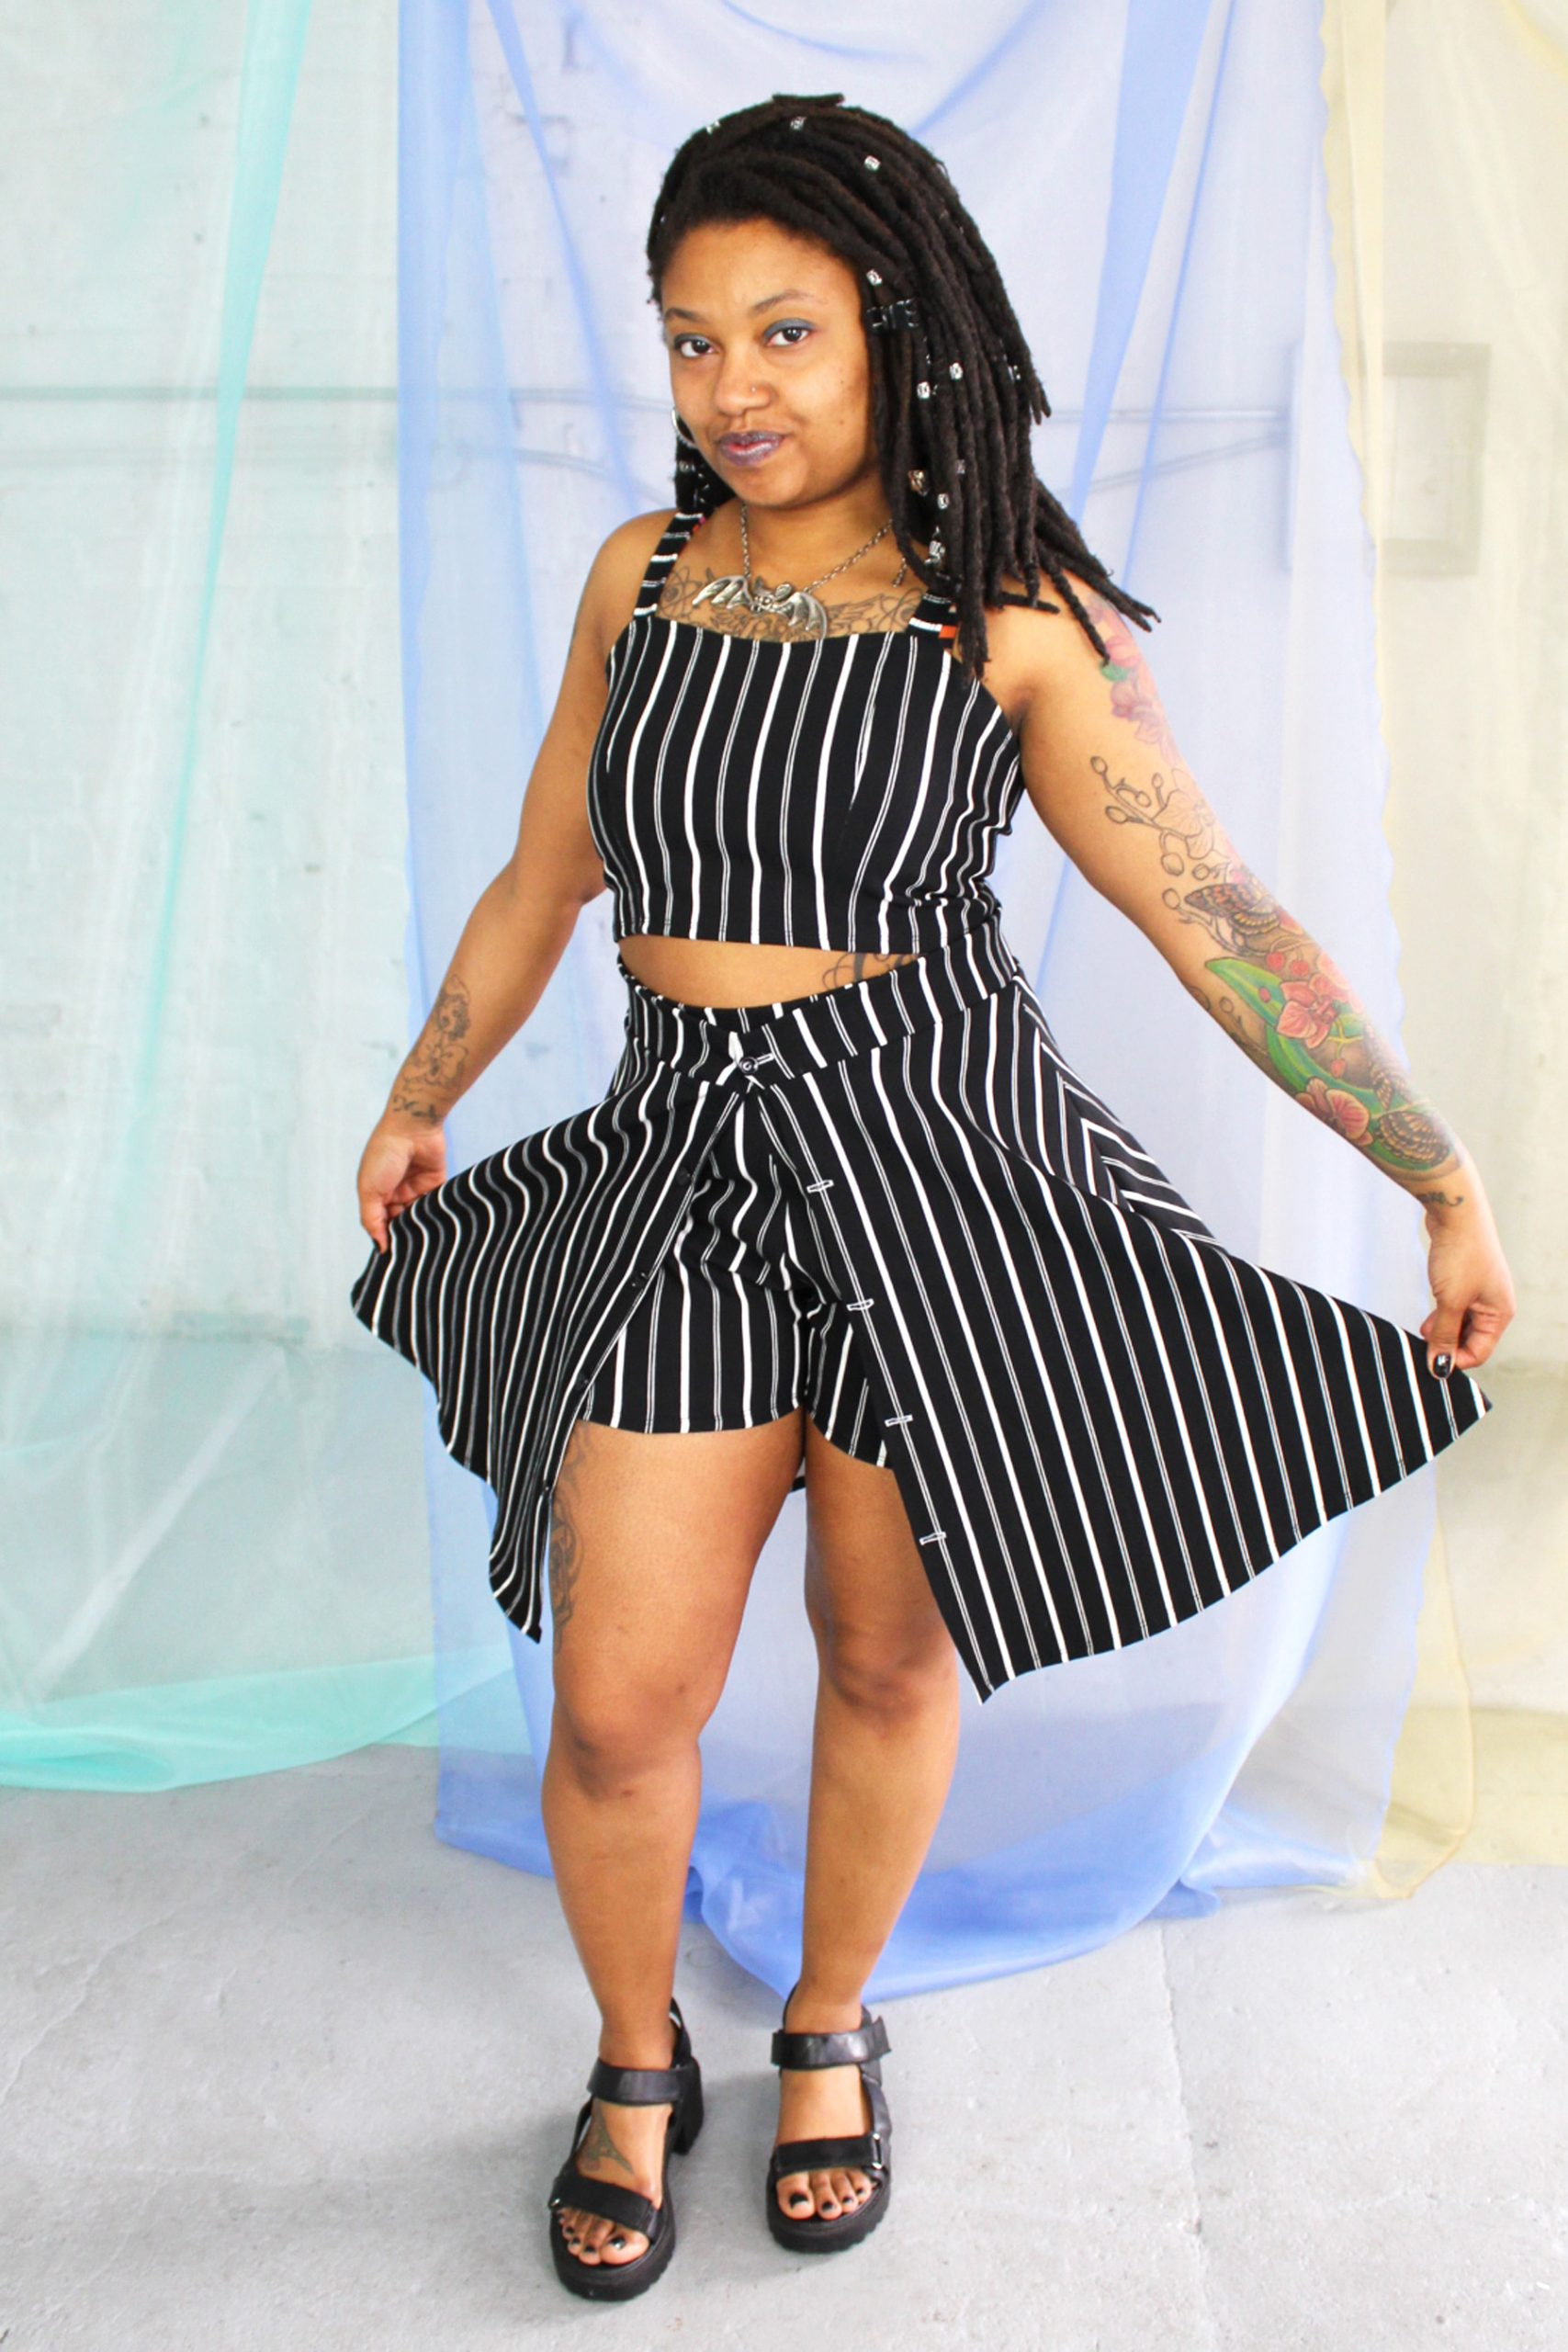 Black straight size model with locs modeling black and white striped crop top, shorts, and over skirt - ethically made in NYC